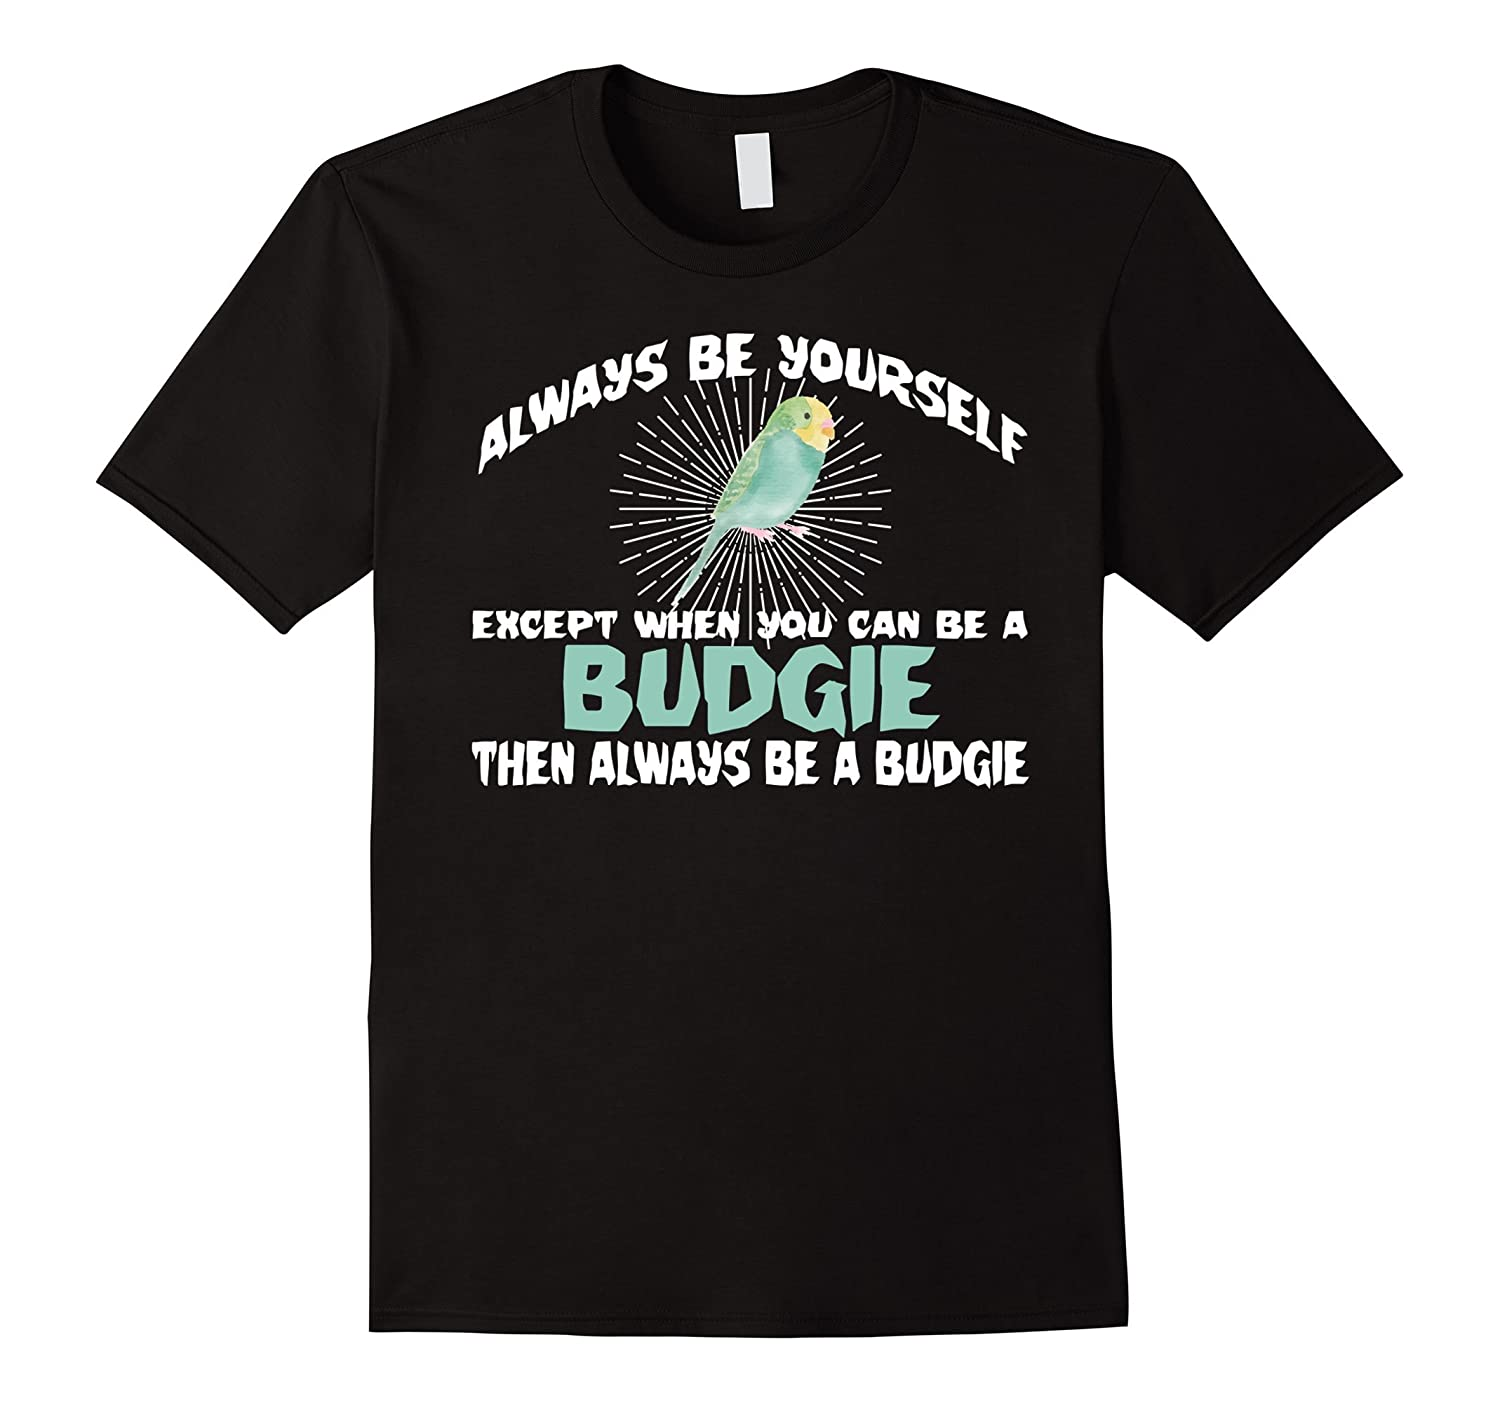 7258da7f8 Always Be Yourself Except You Can Be A Budgie Funny T-shirt-CL ...